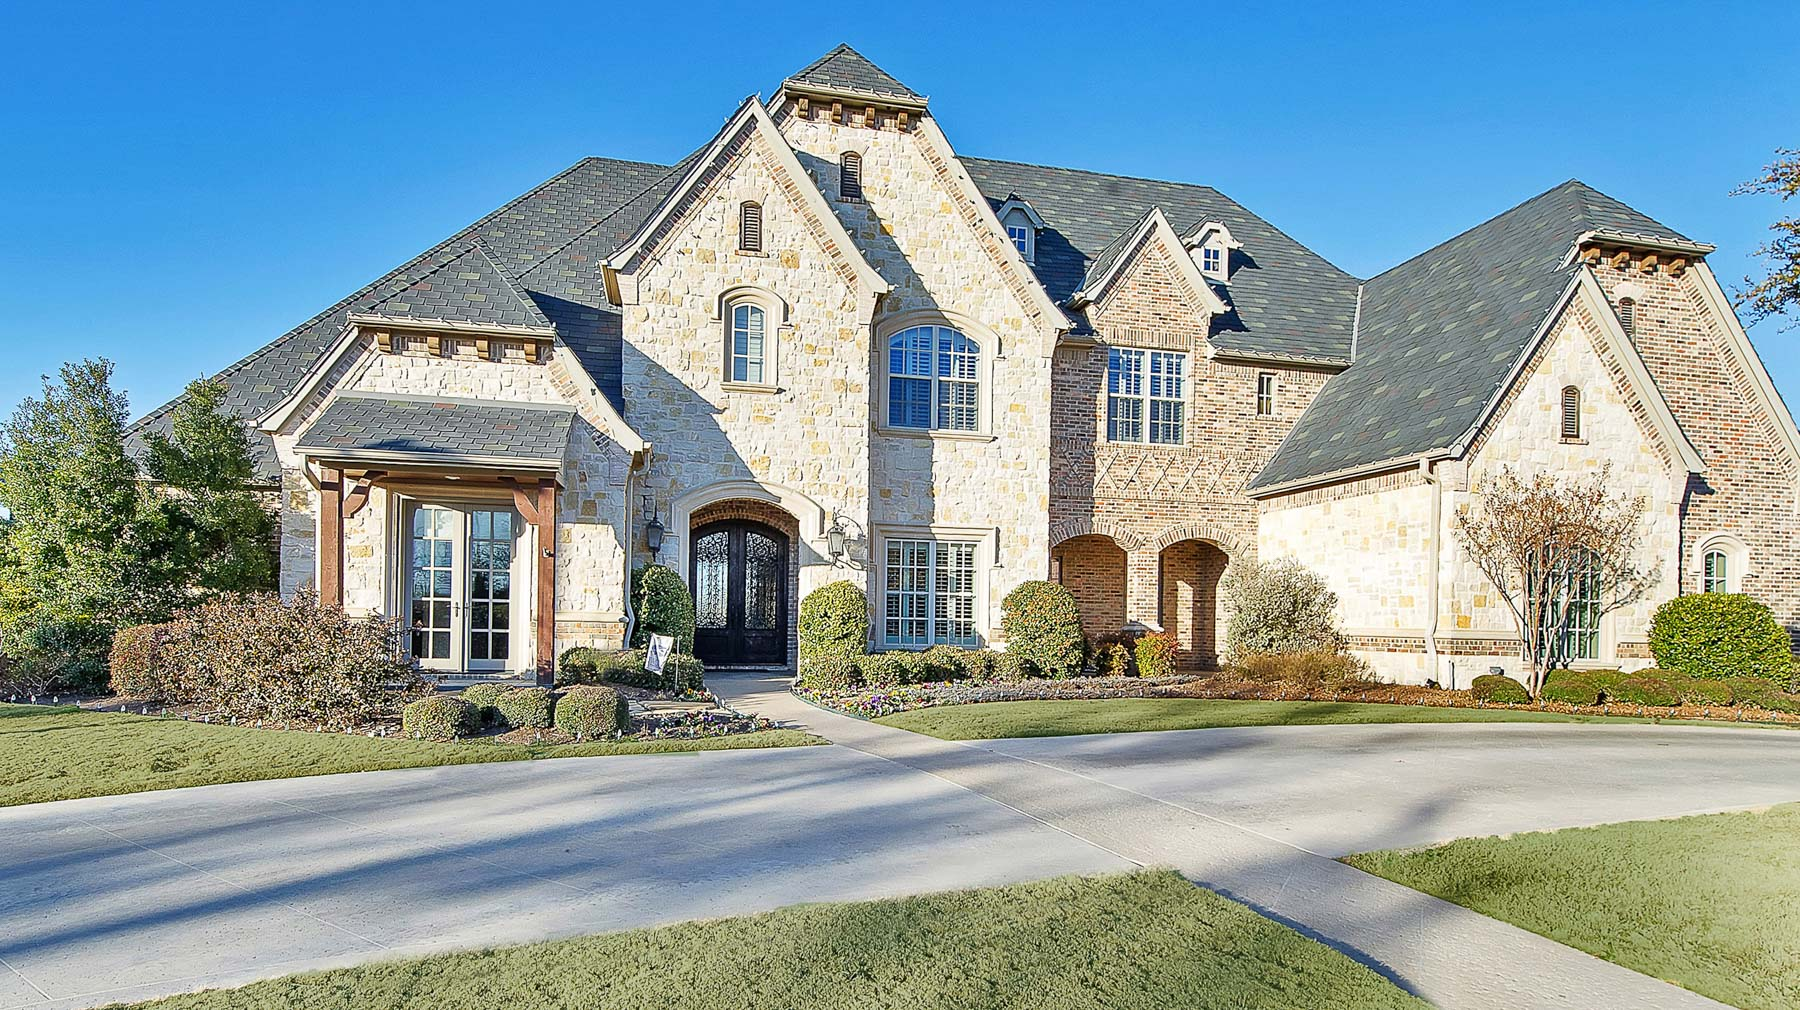 独户住宅 为 销售 在 Extraordinary Mira Vista Traditional 6558 Saucon Valley Drive Fort Worth, 得克萨斯州 76132 美国